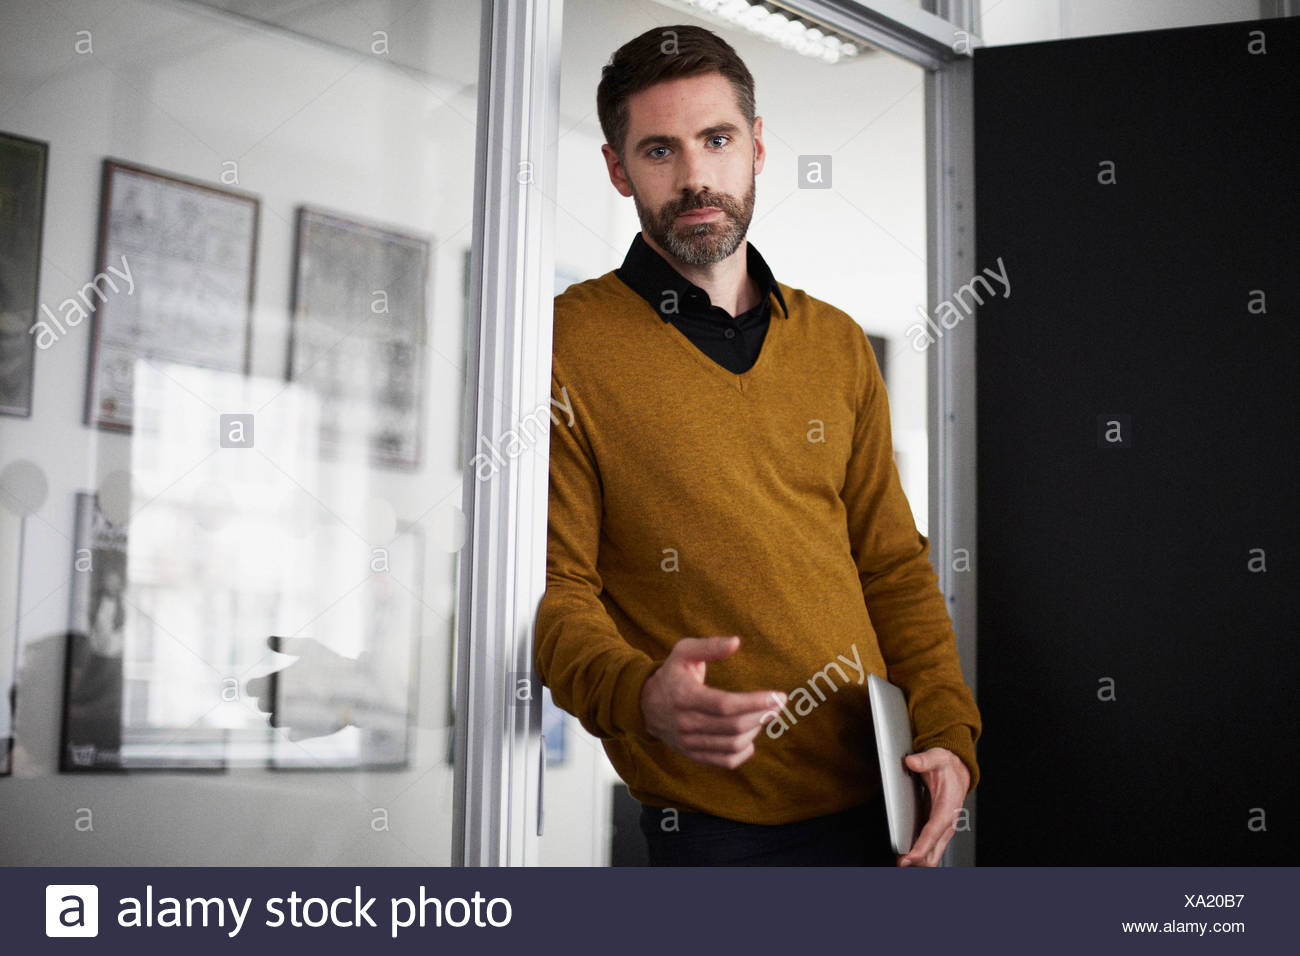 Businessman in doorway Photo Stock